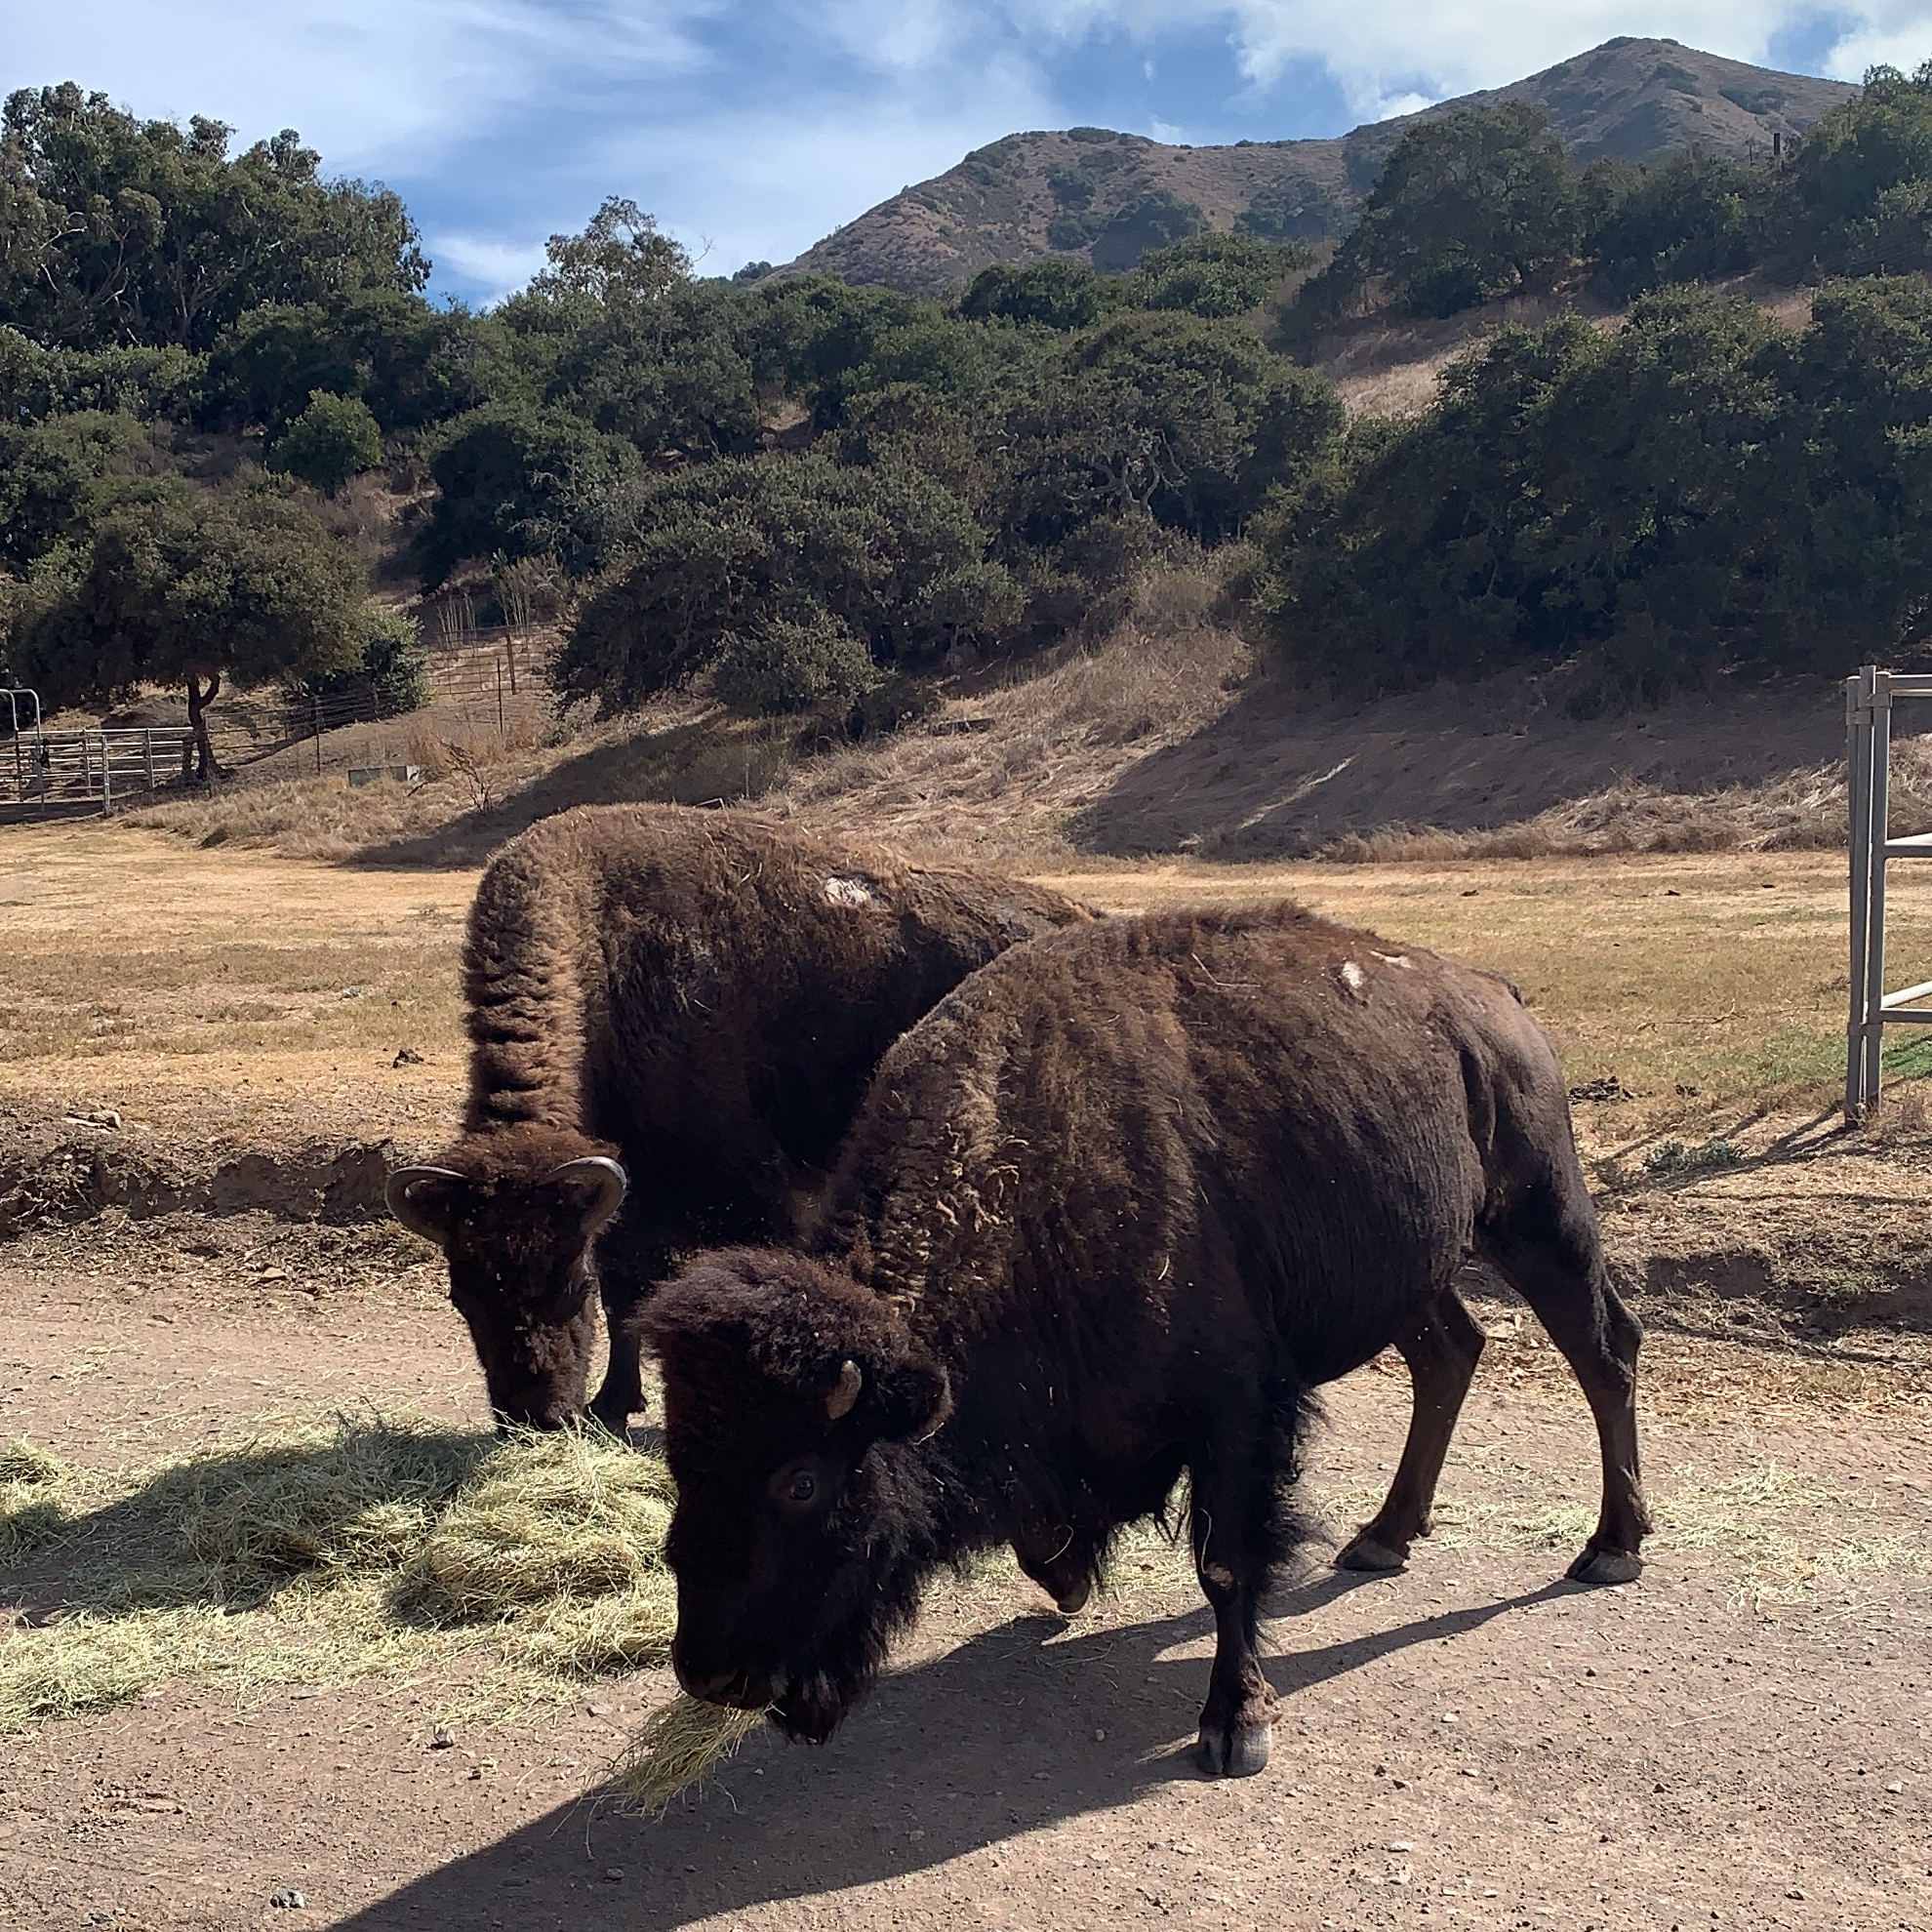 Bison in the Island of Catalina Conservancy does an amazing tour of the undeveloped parts of the island. We learned about the endemic and invasive species, and the work they're doing to protect the island. | For Animals For Earth